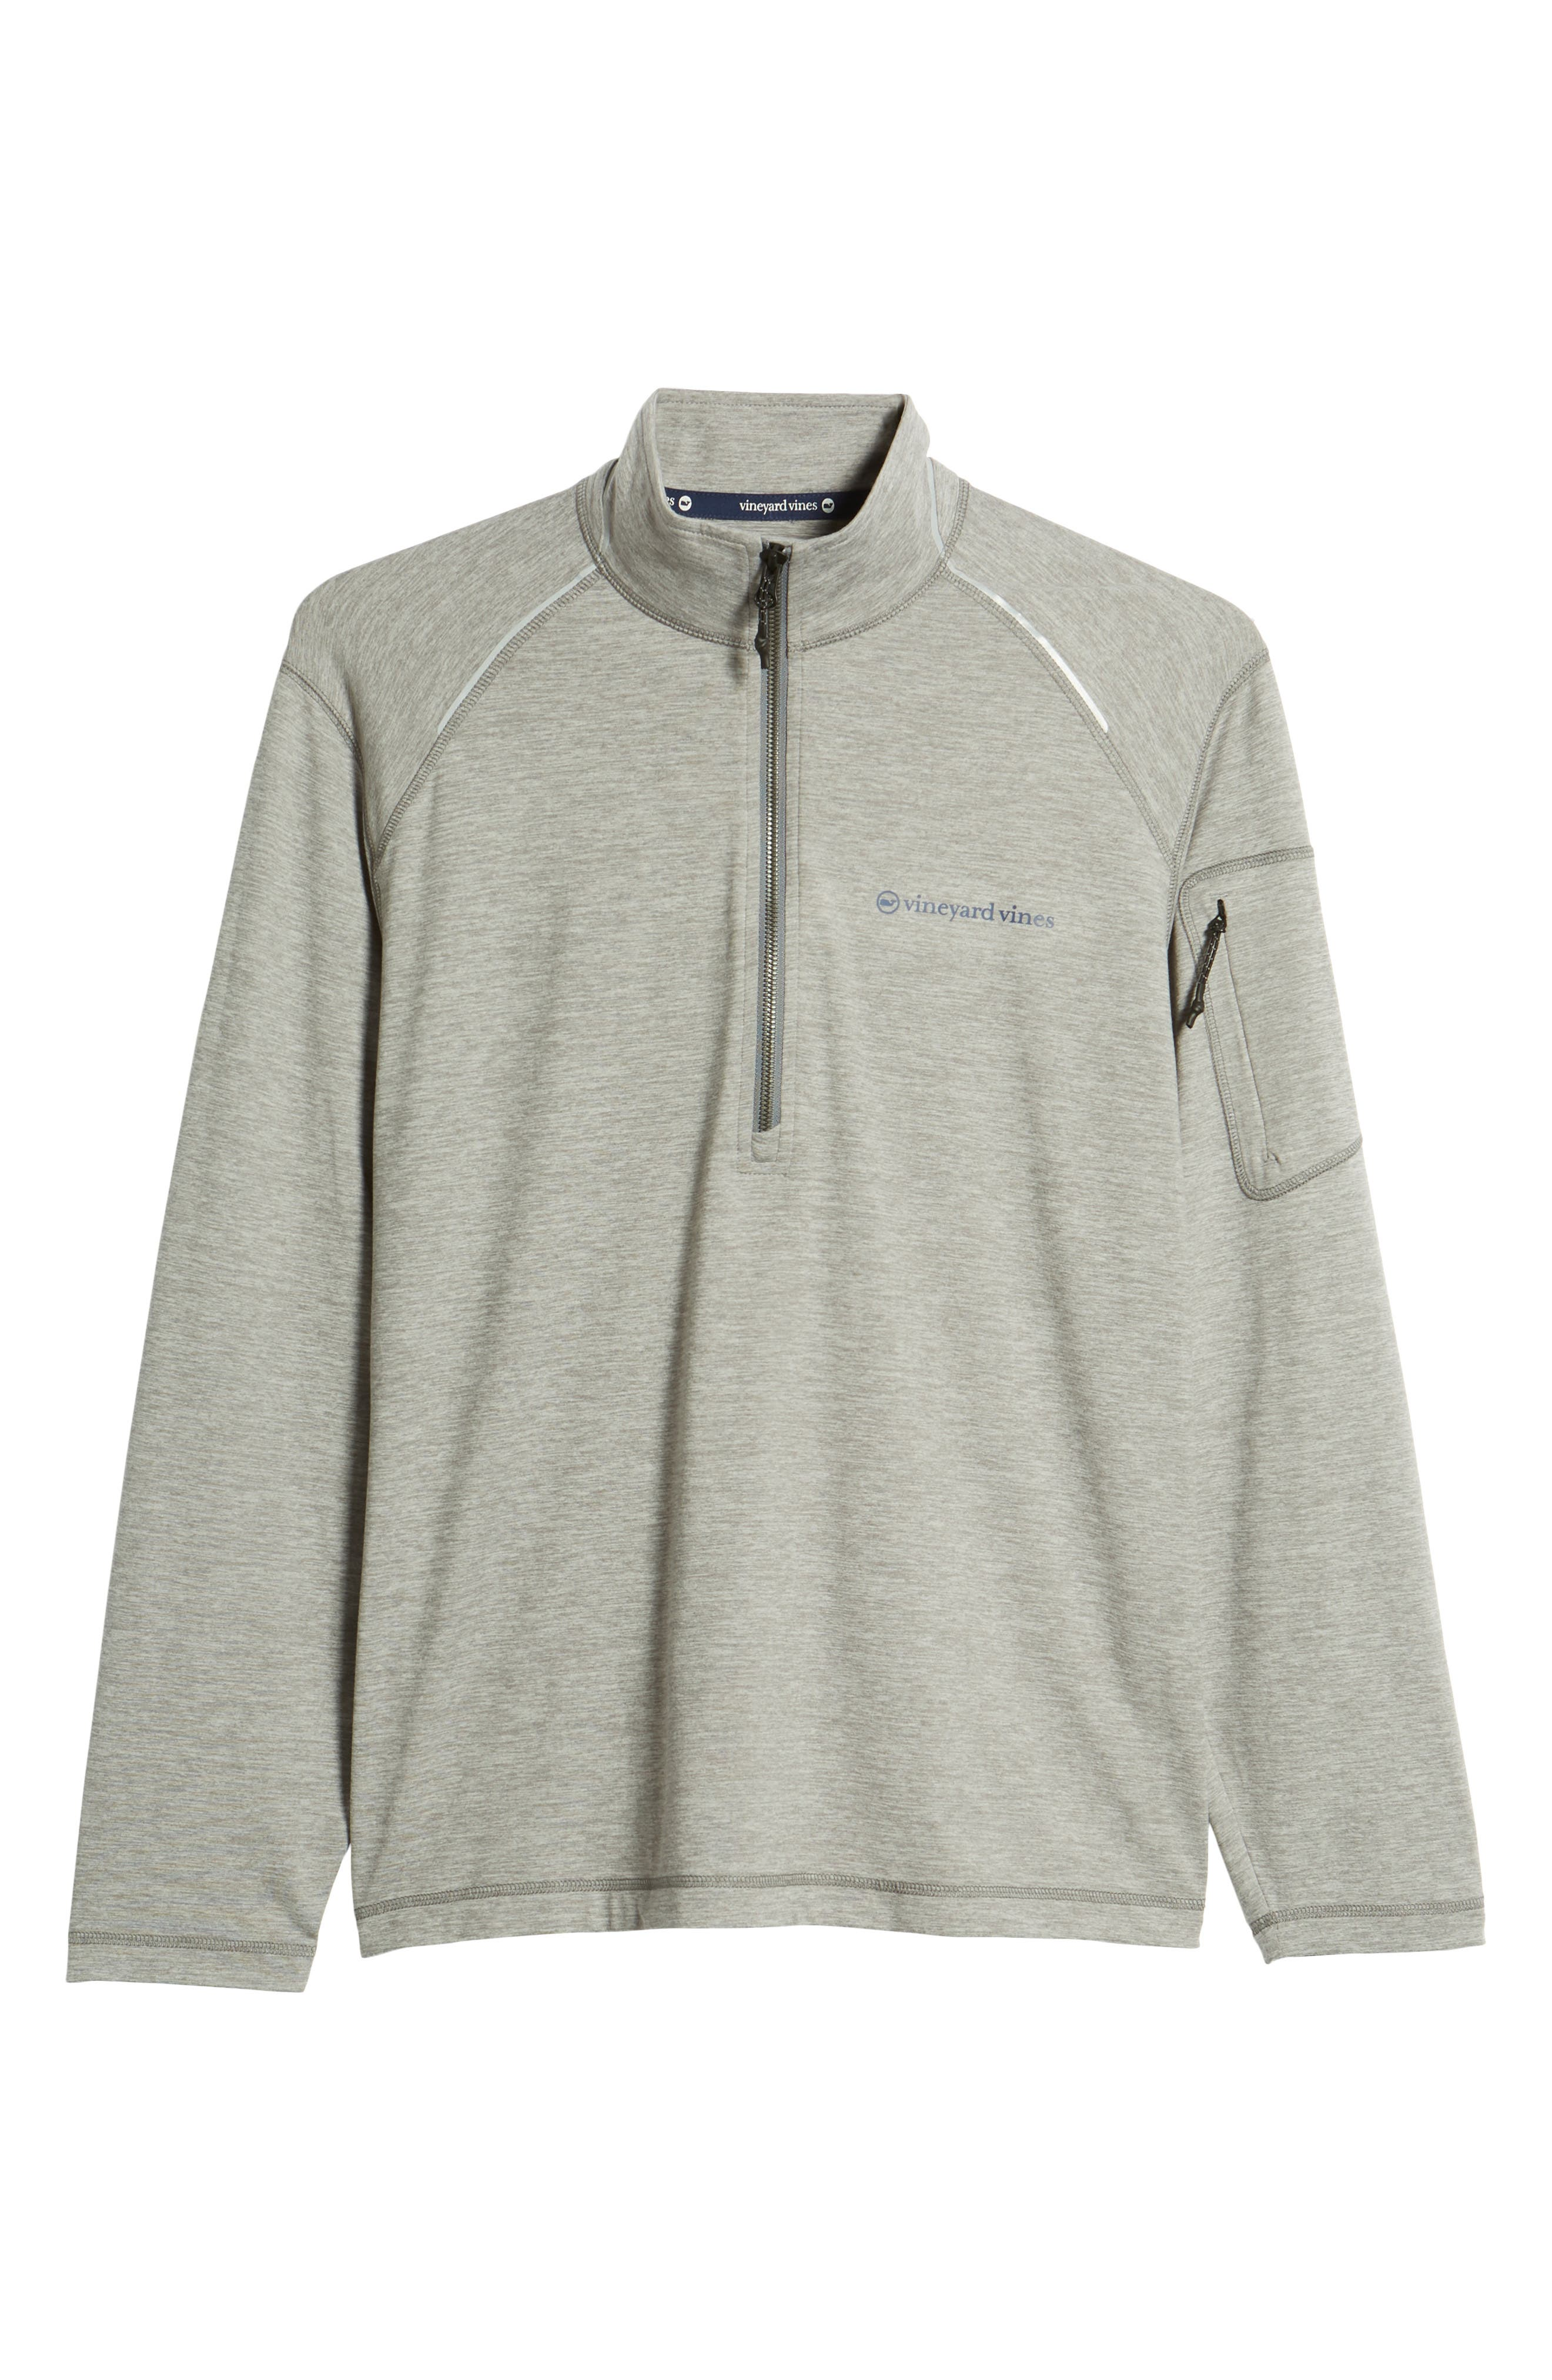 Performance Half Zip Pullover,                             Alternate thumbnail 6, color,                             Gray Heather